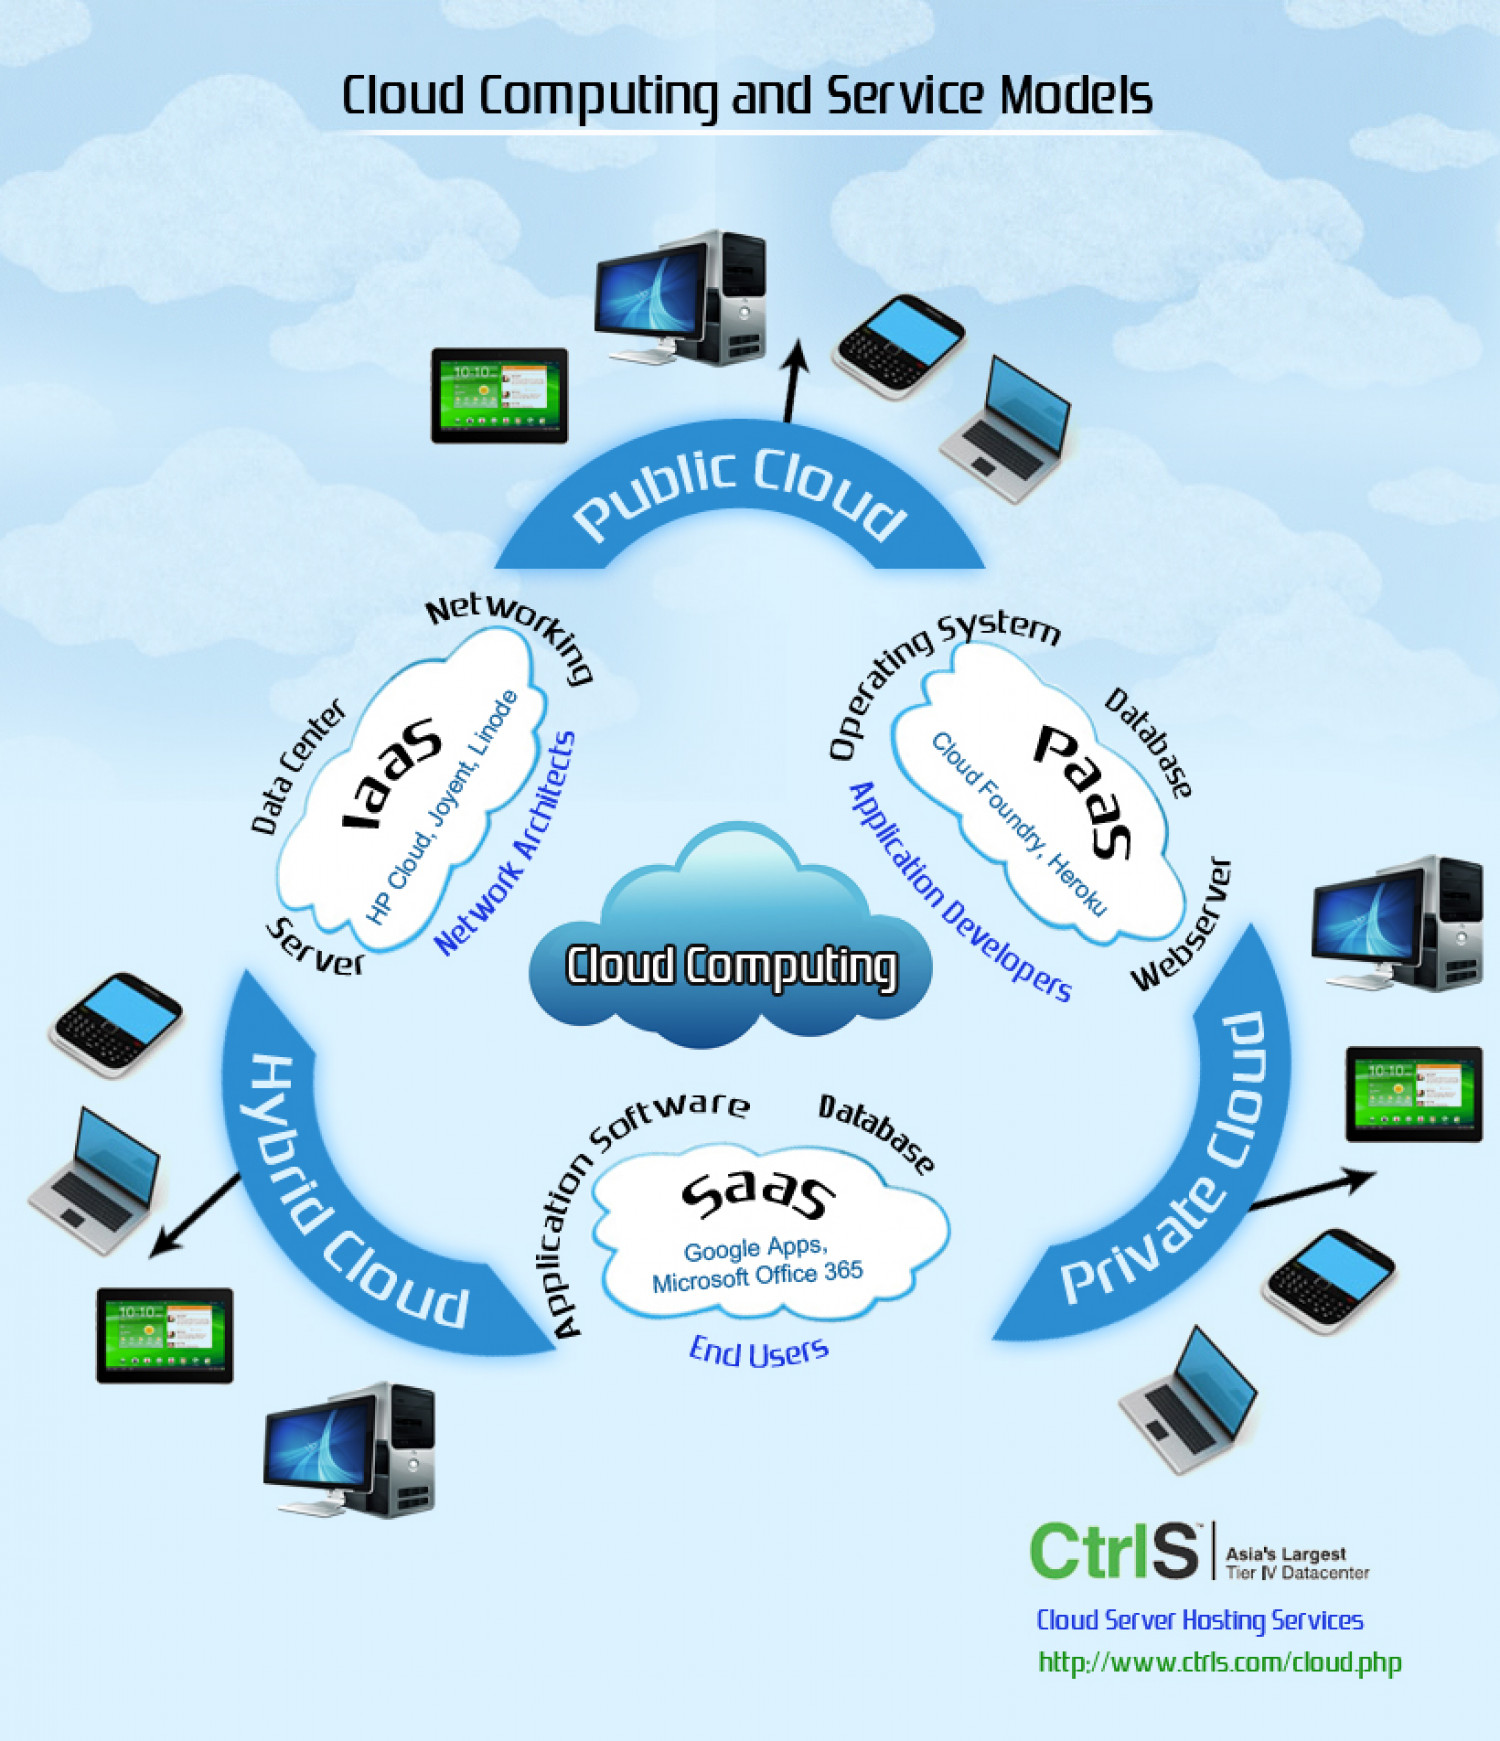 Cloud Computing and Service Models  Infographic